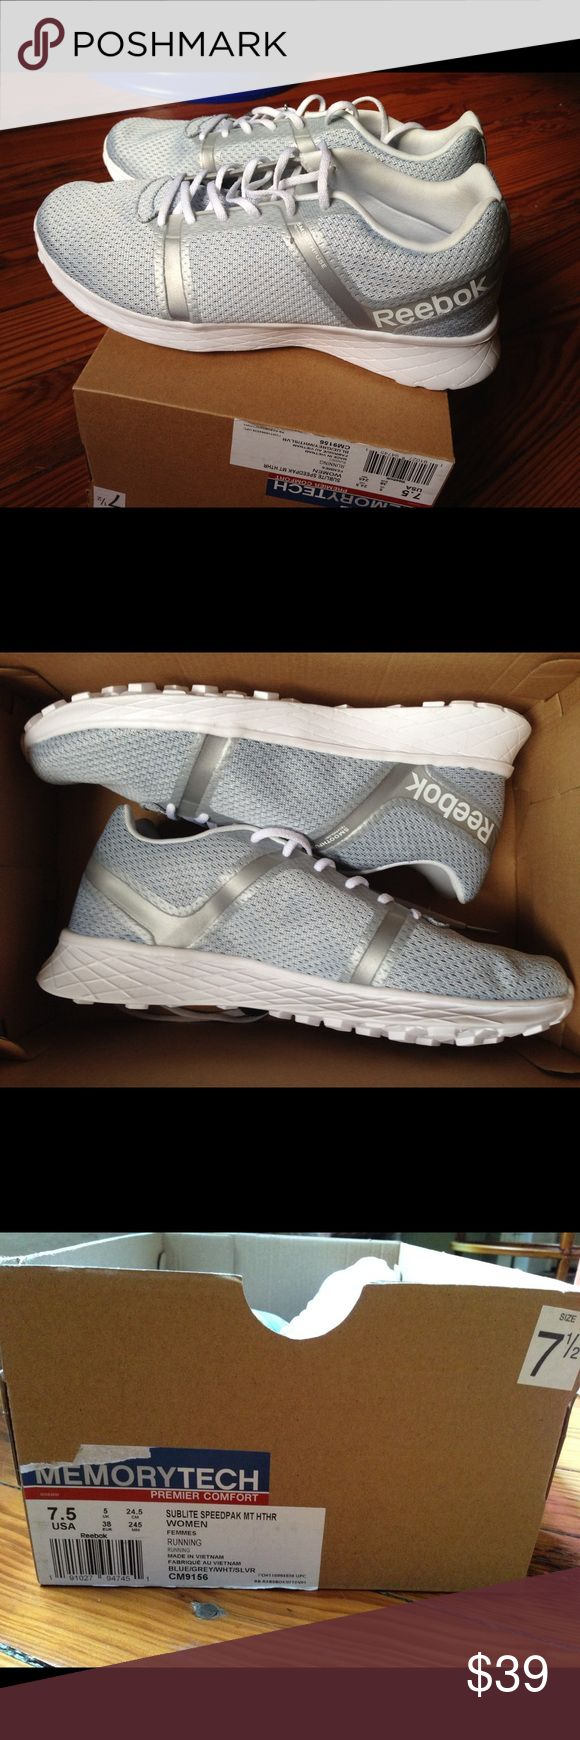 Women's Reebok Running Sneakers, Size 7.5 Never worn! Reebok Sublite Speedpak 2 lightweight running sneakers. I own these in a different size and they're incredibly comfortable. Light blue with silver accent color. Thanks for visiting! Reebok Shoes Athletic Shoes